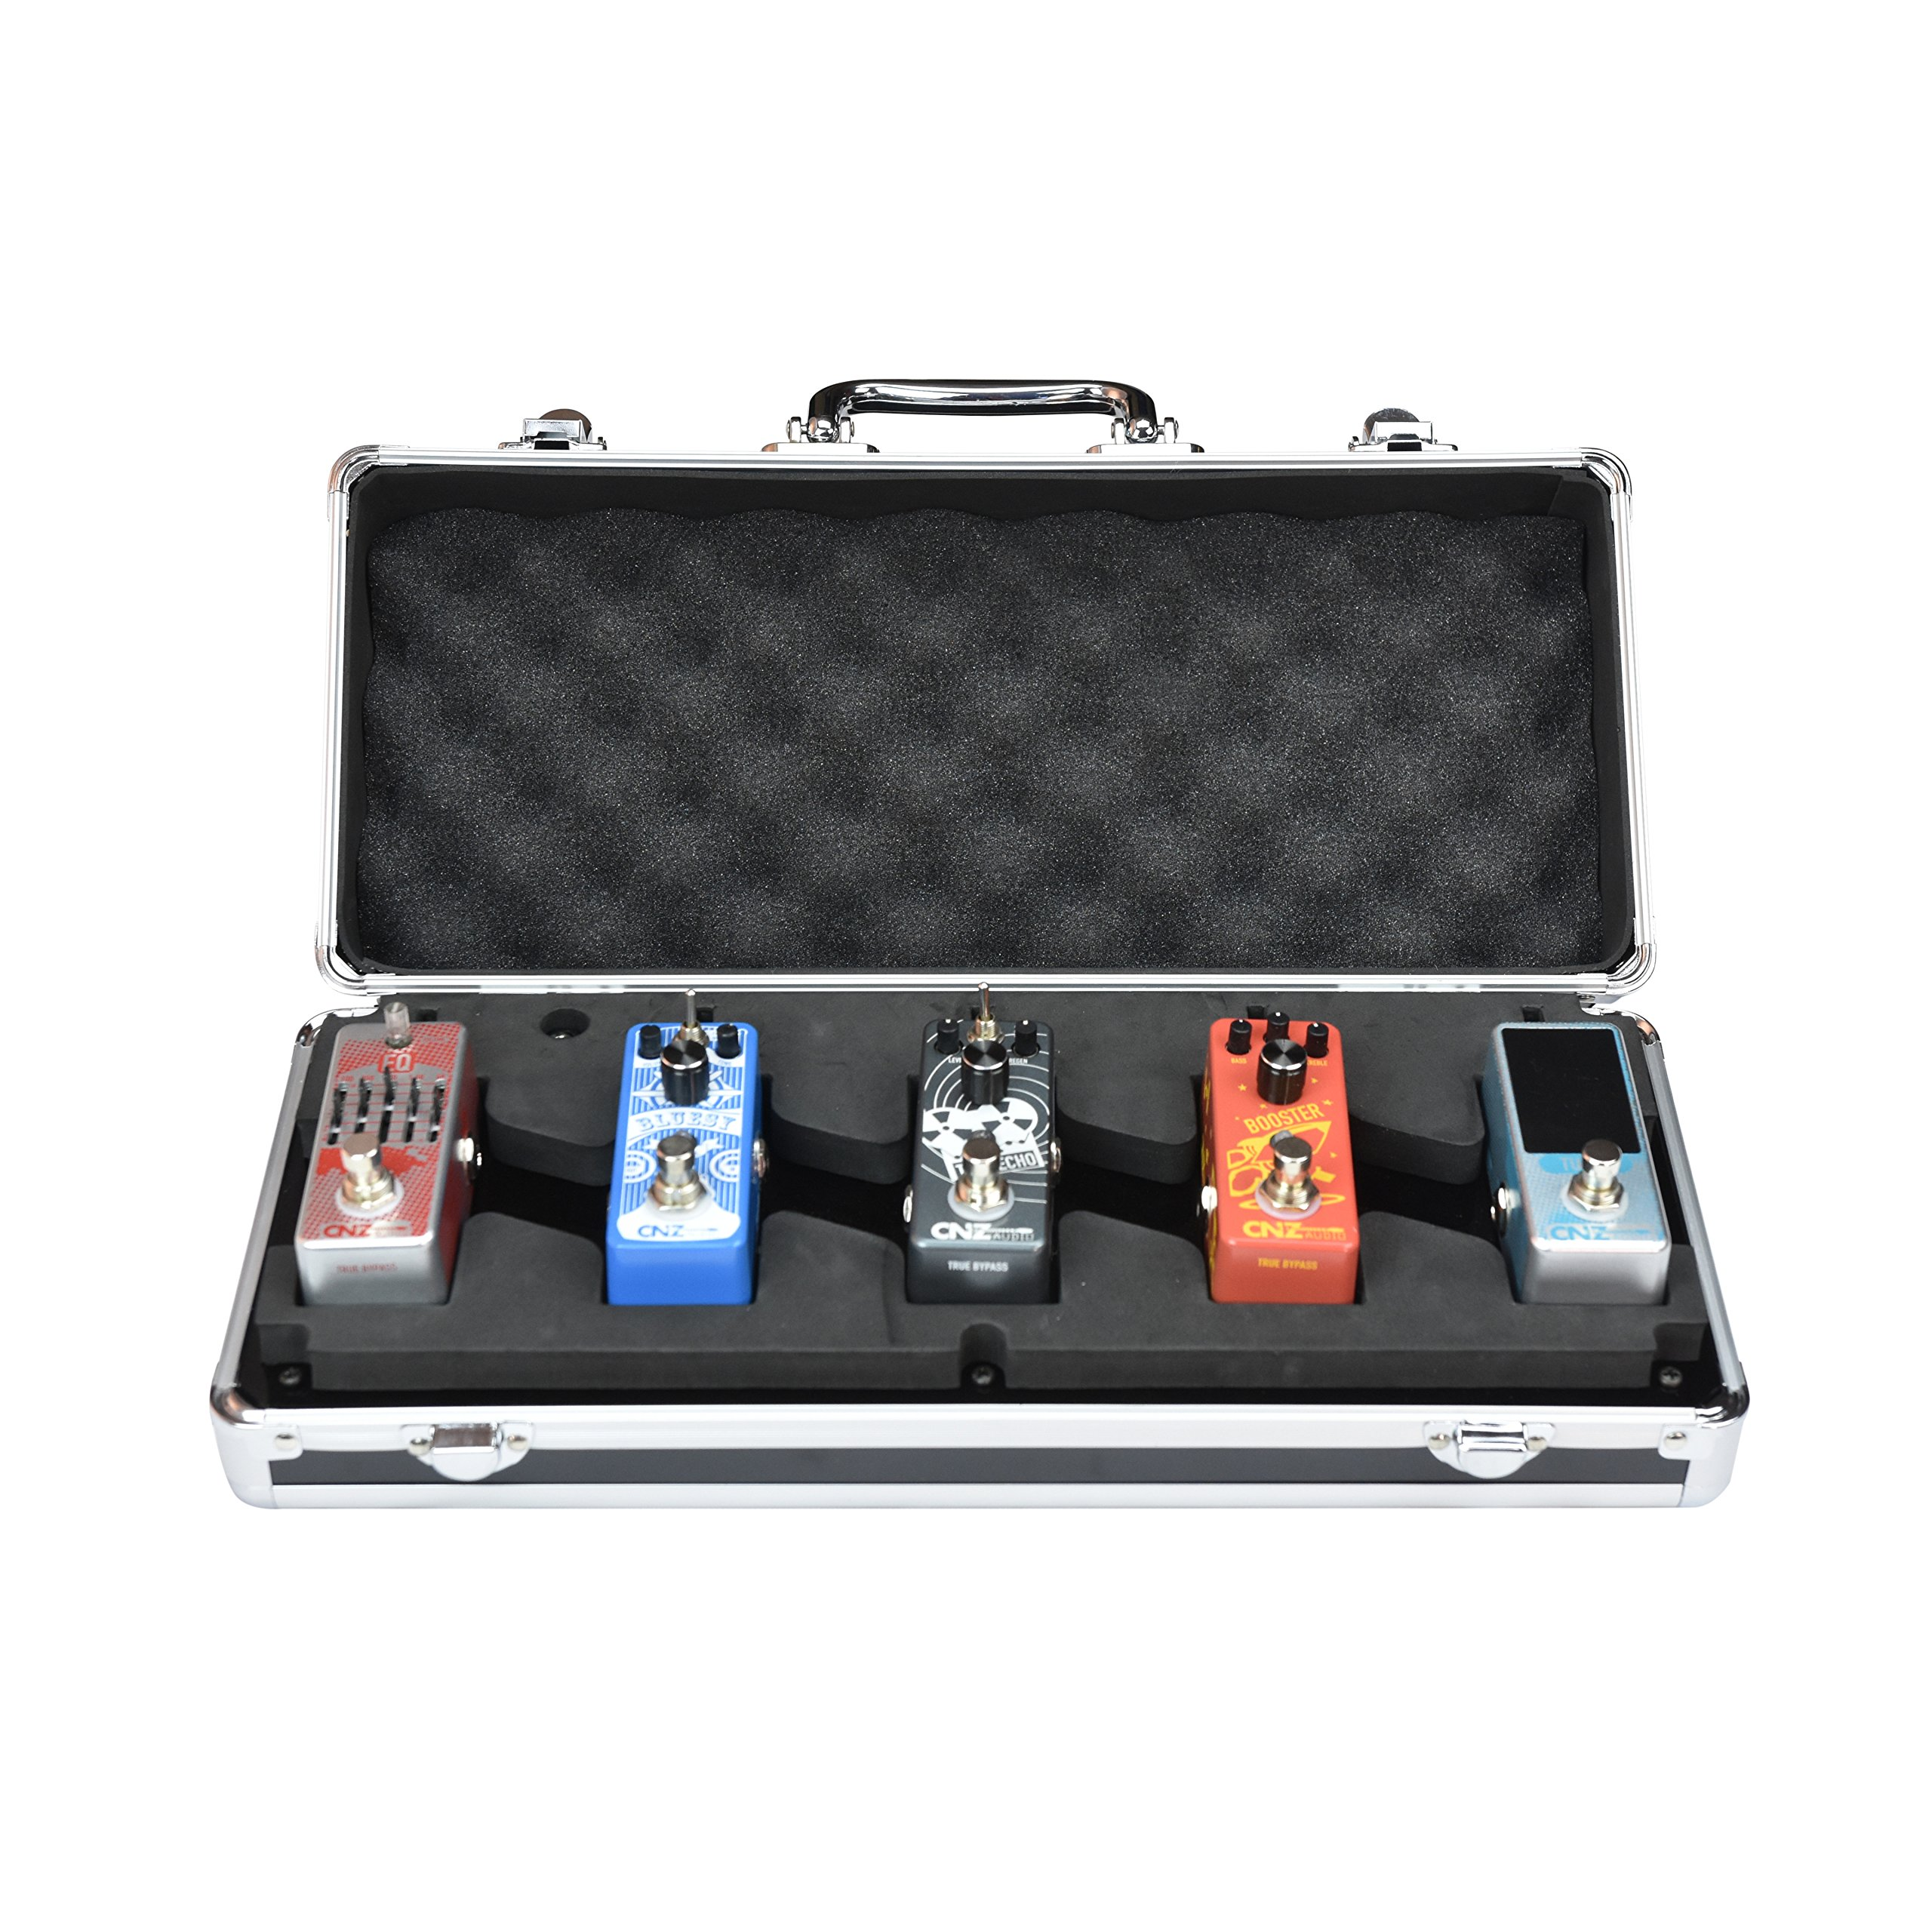 CNZ Audio PedalPad Case 5 - Guitar Effects Pedalboard for 5 Mini Pedals + Power Supply & Cables by CNZ Audio